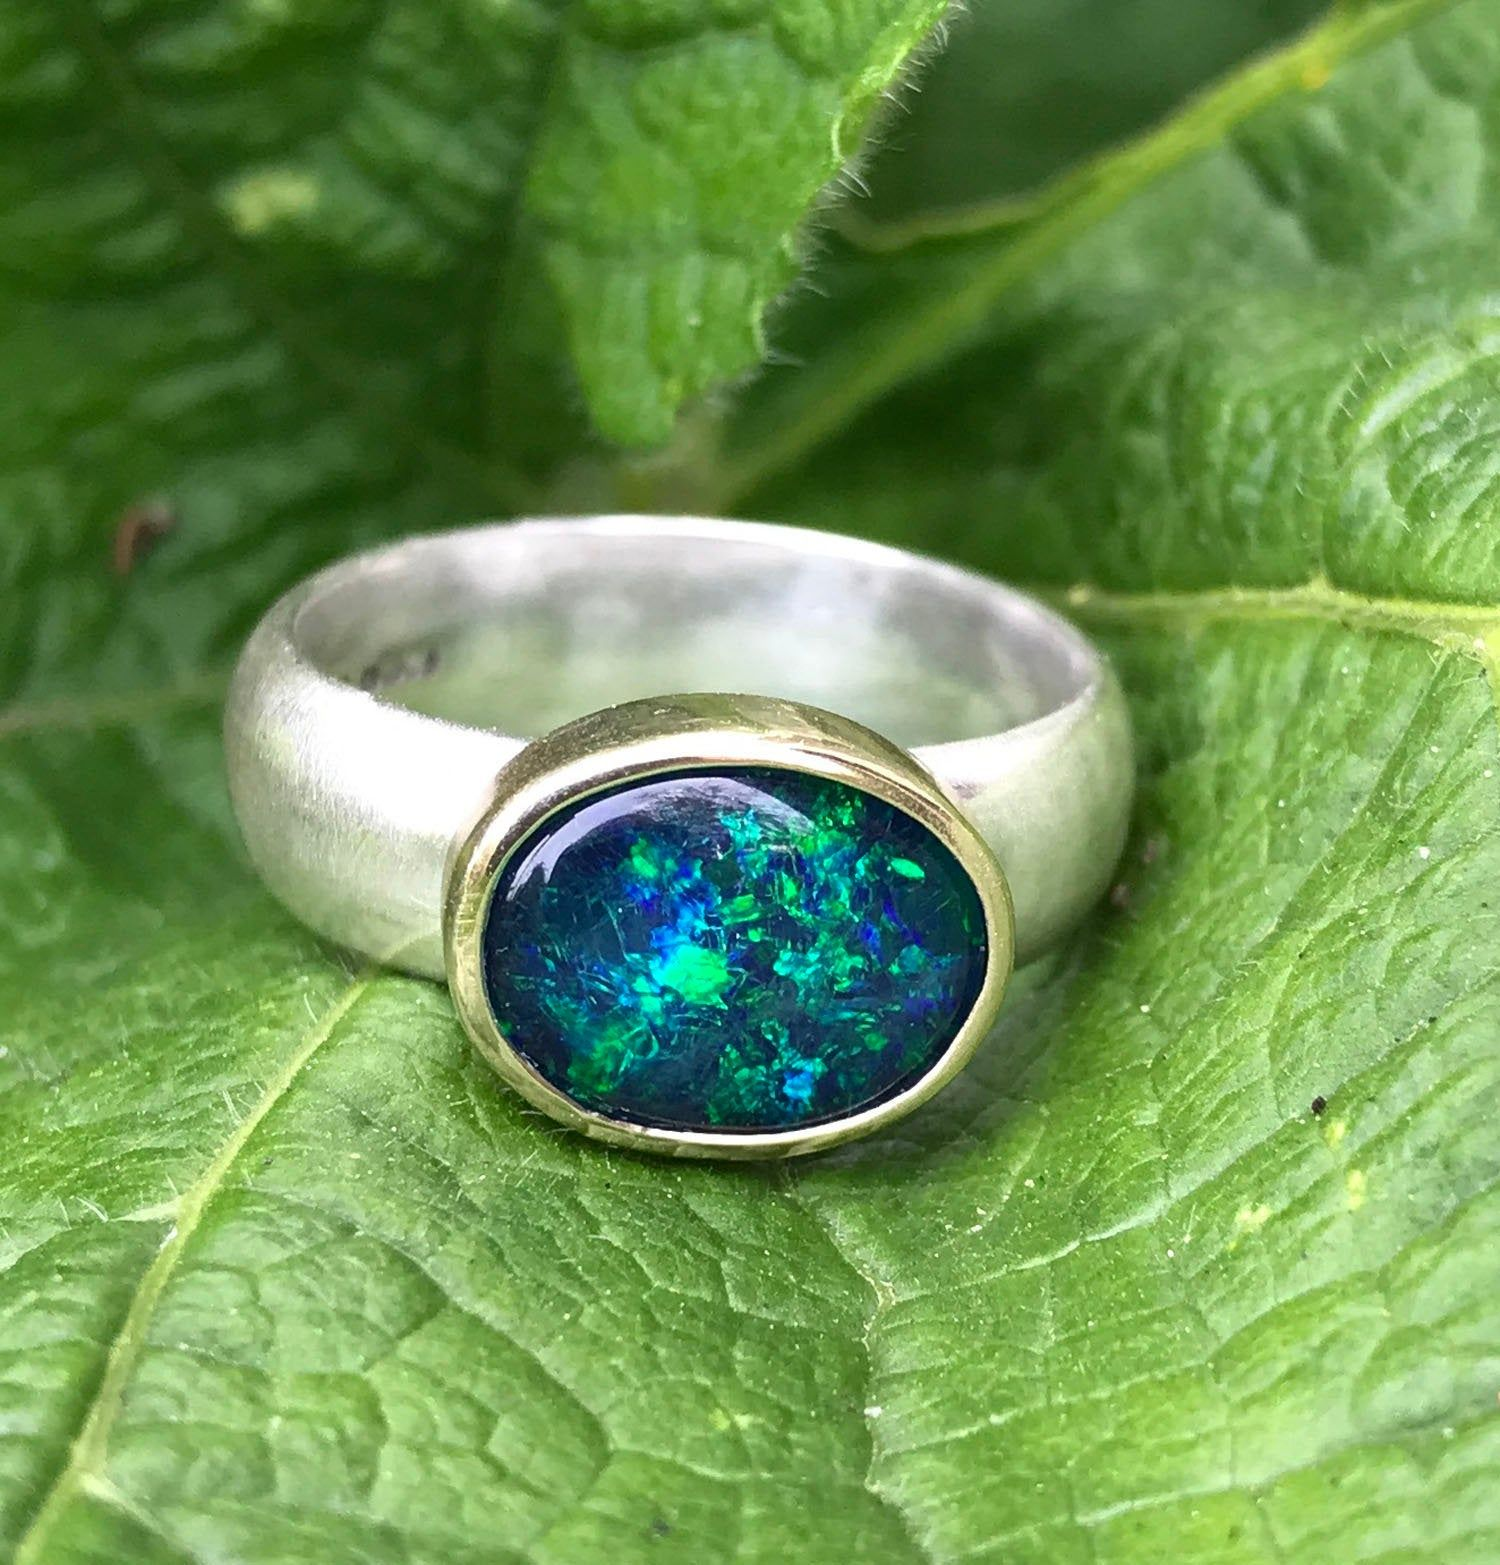 Dark blue and green opal UK shop gold and silver ring large opal ring